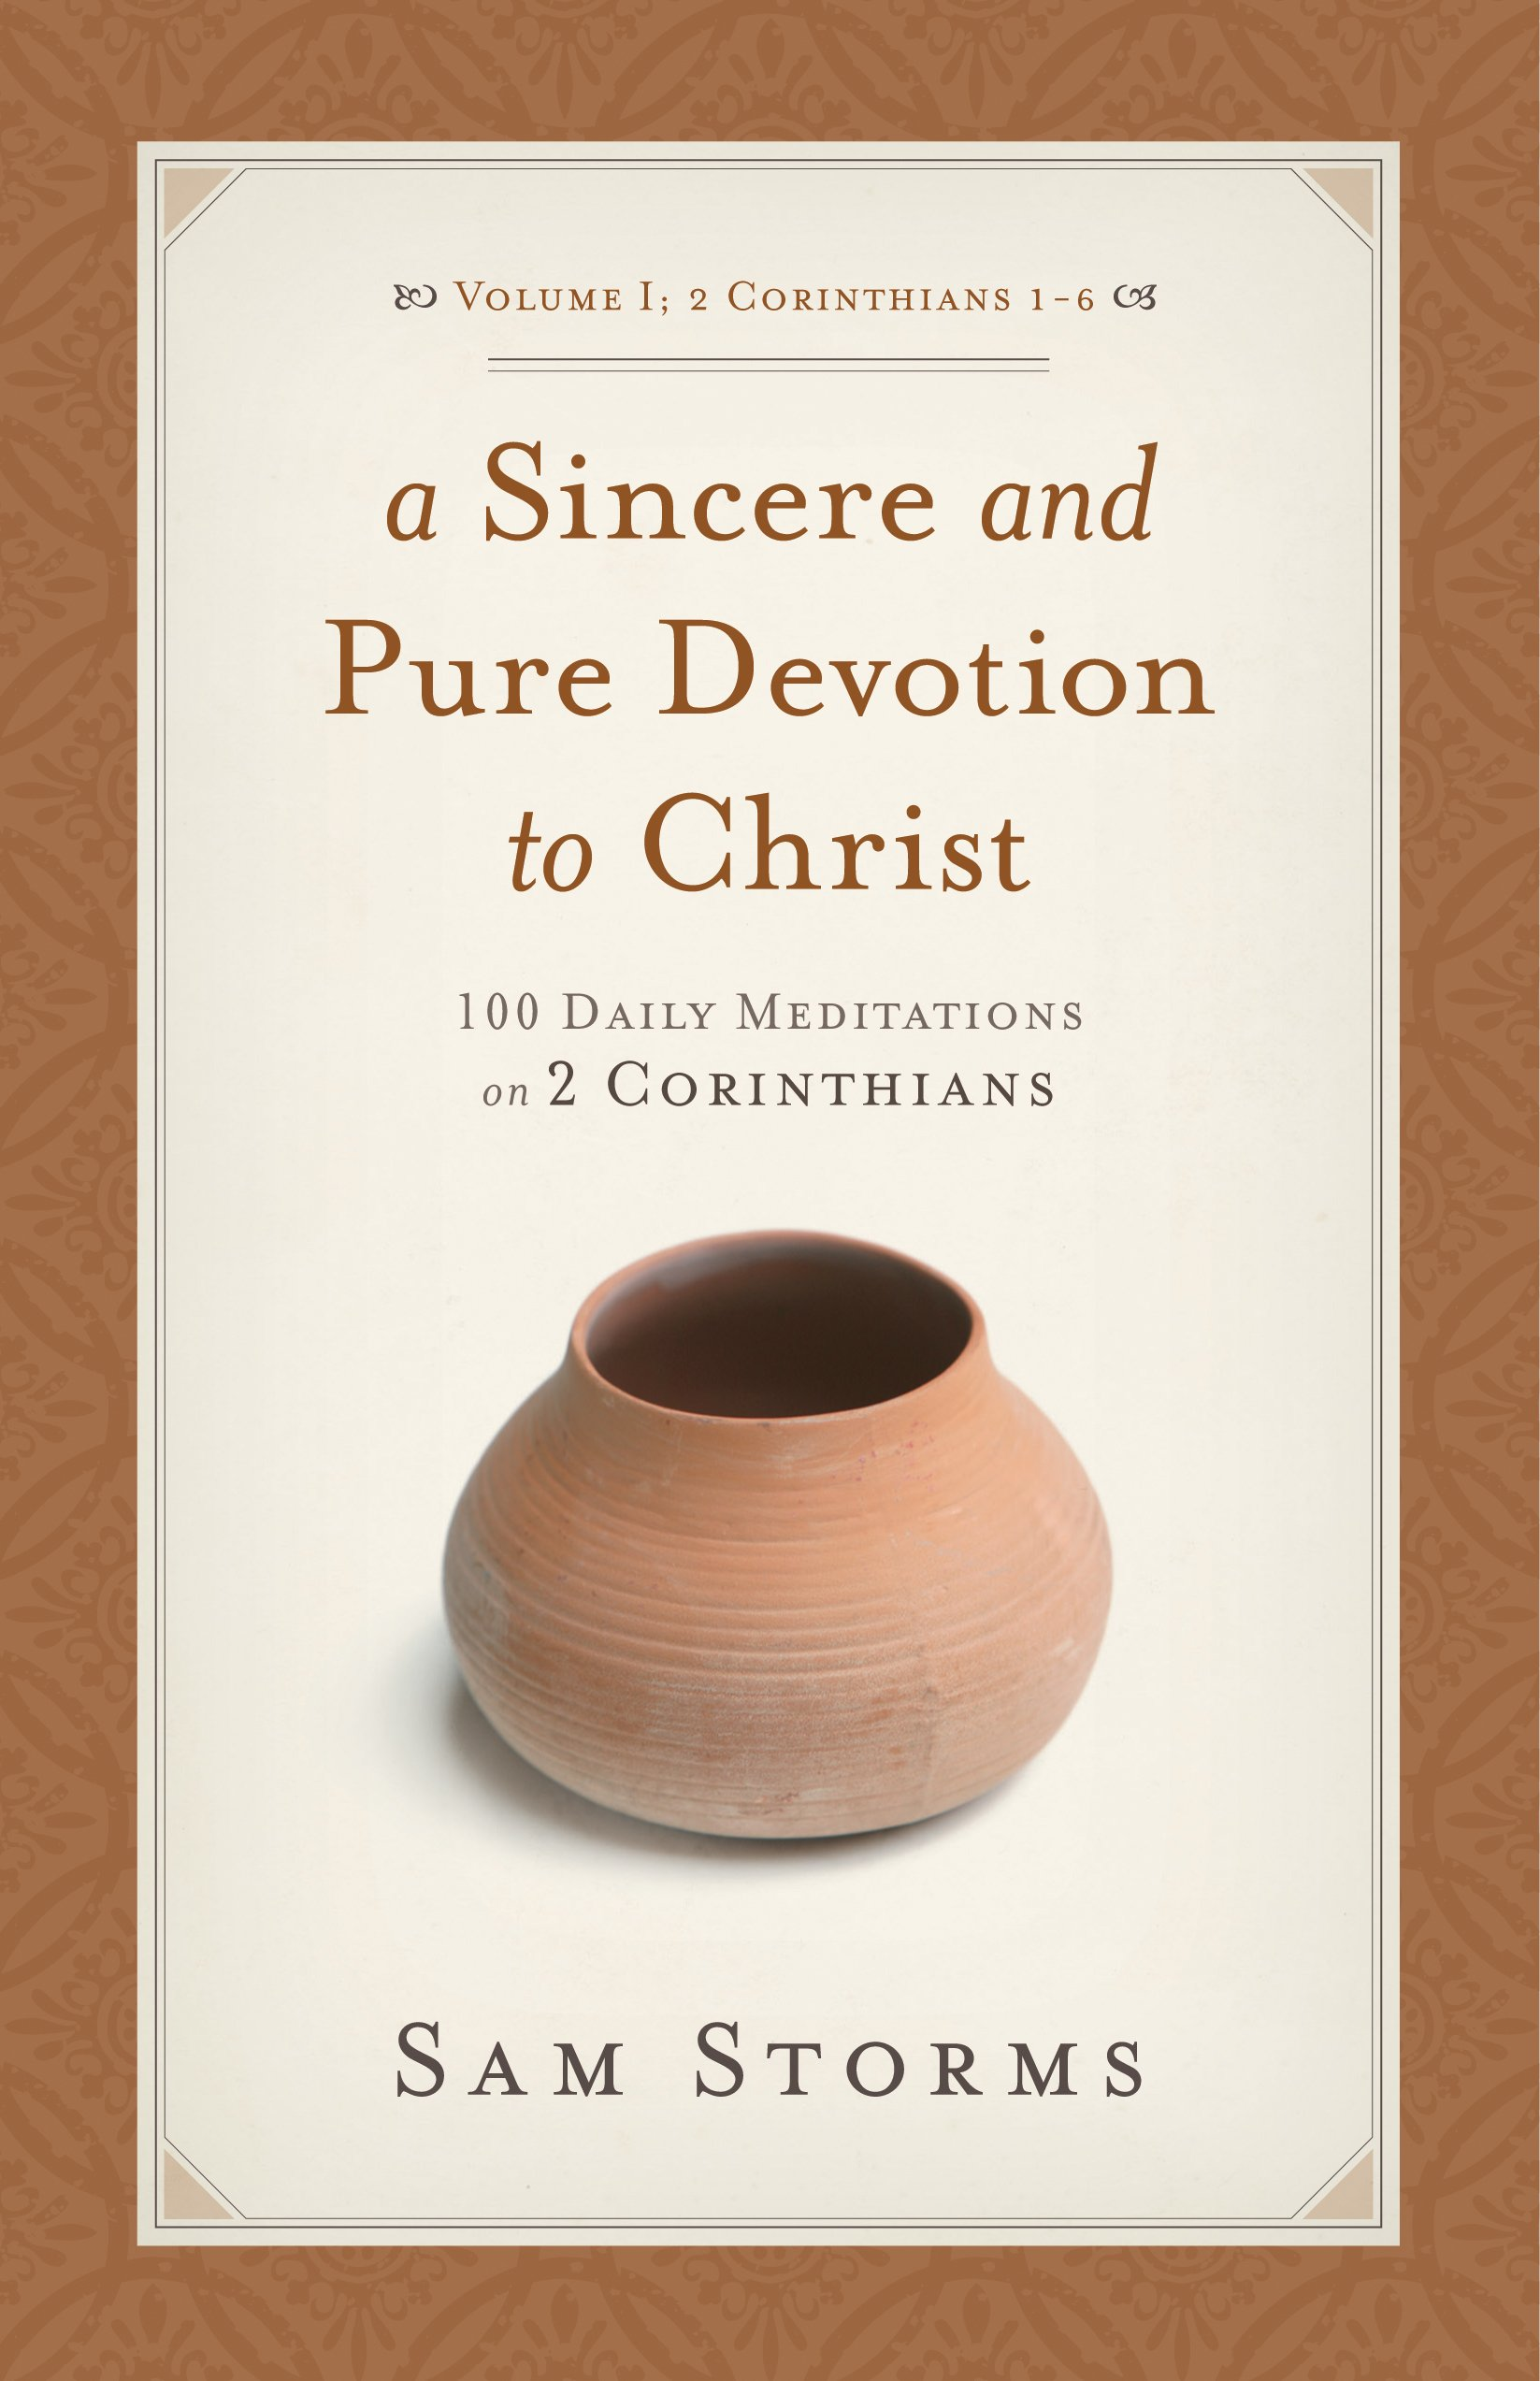 A Sincere and Pure Devotion to Christ (2 Corinthians 1-6), Volume 1: 100 Daily Meditations on 2 Corinthians ebook